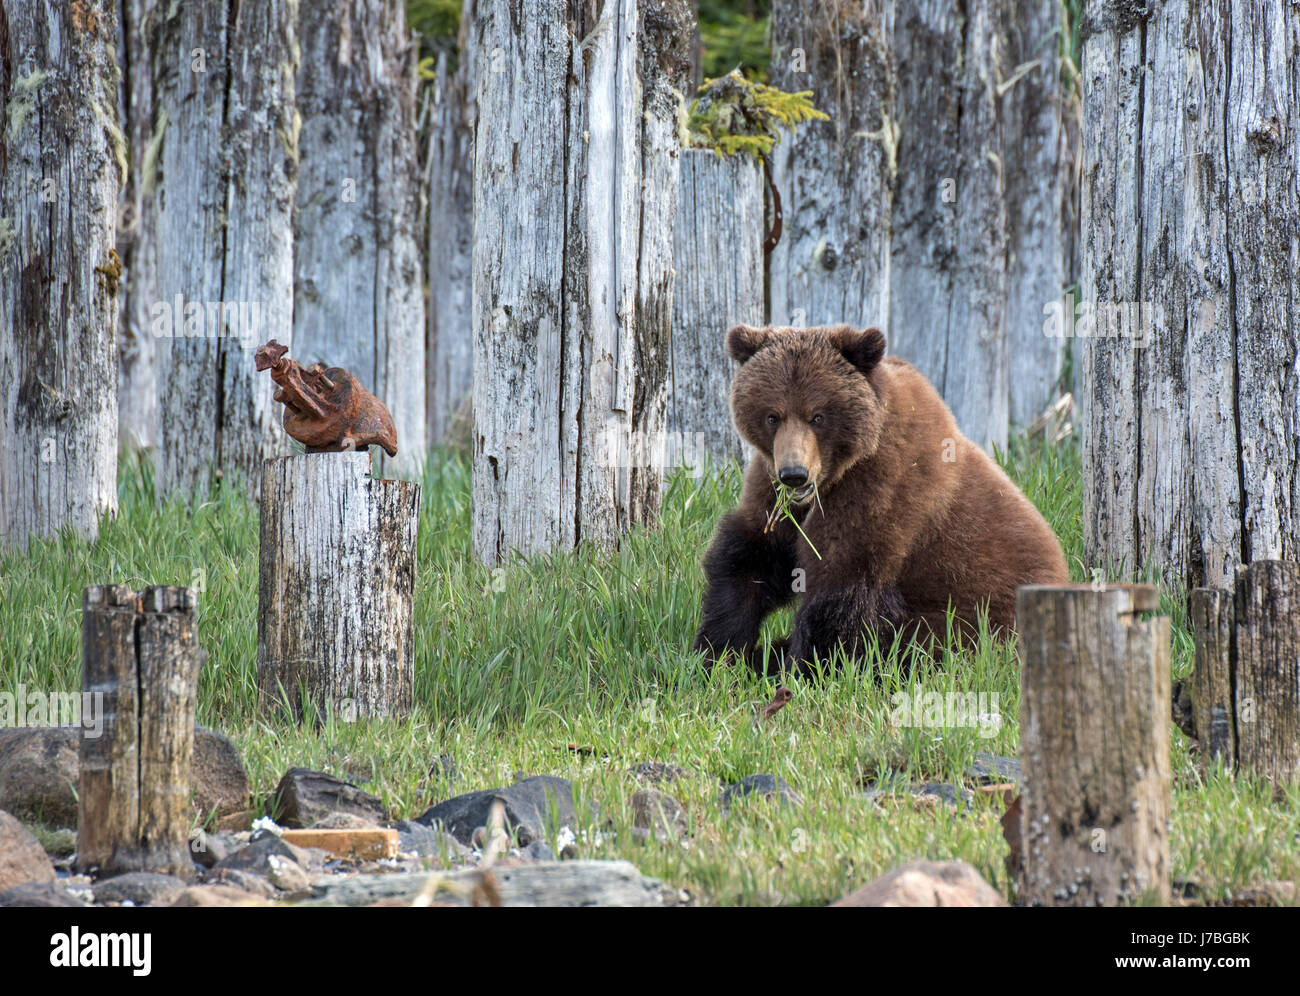 Grizzly Bear eating grass in Southeast Alaska - Stock Image